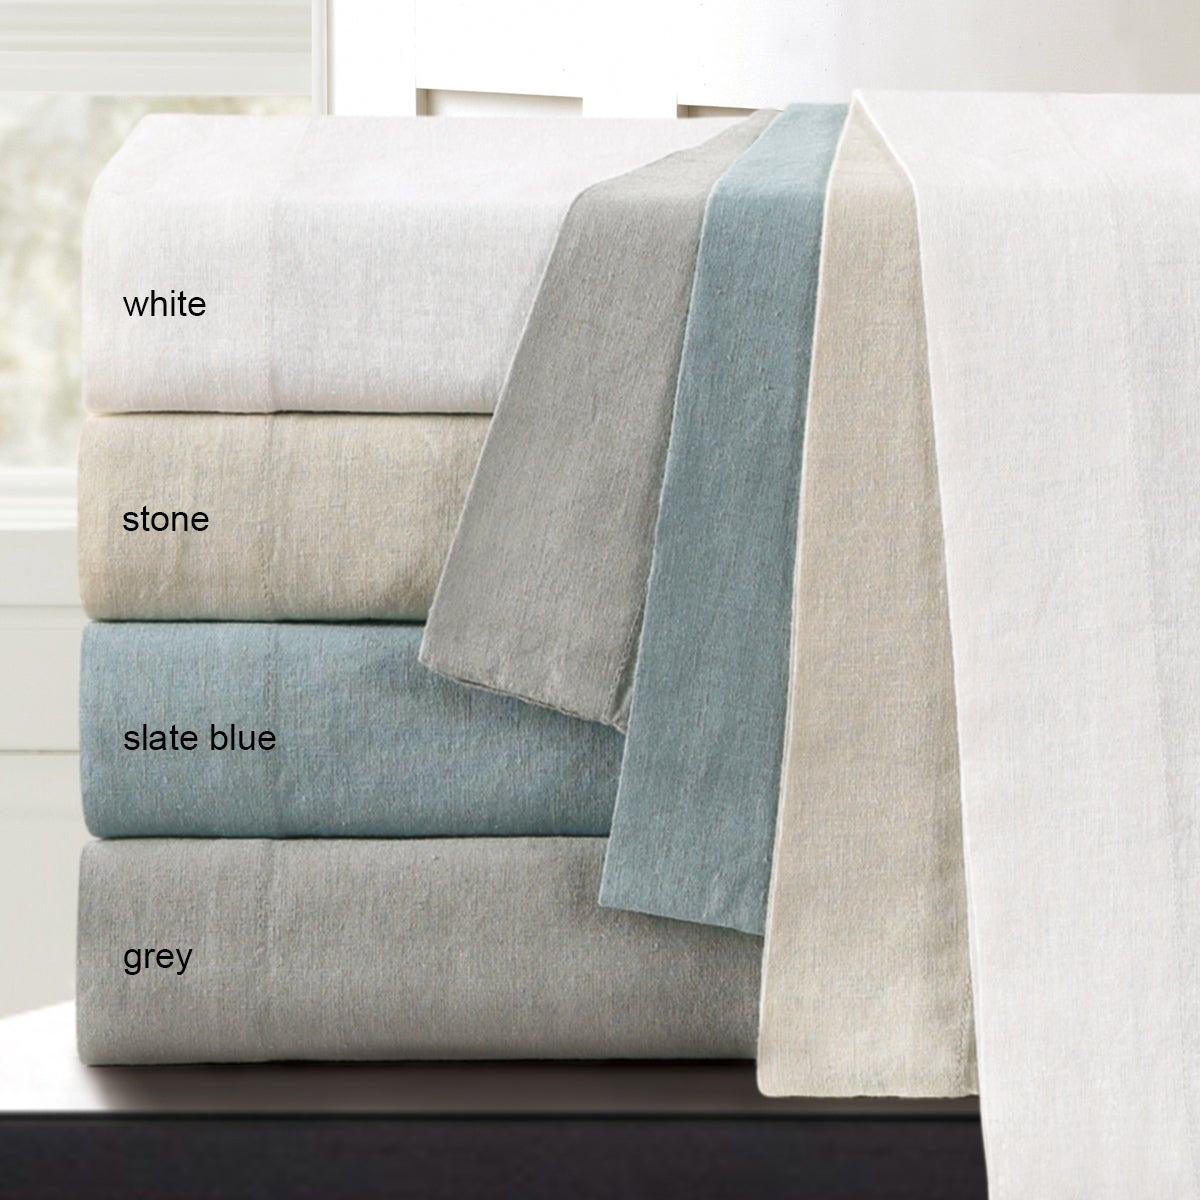 Washed Linen Cotton Blend Duvet Cover Set On Sale Overstock 17487247 Grey Queen Full Queen Full Traditional Modern Contemporary Mid Century Modern